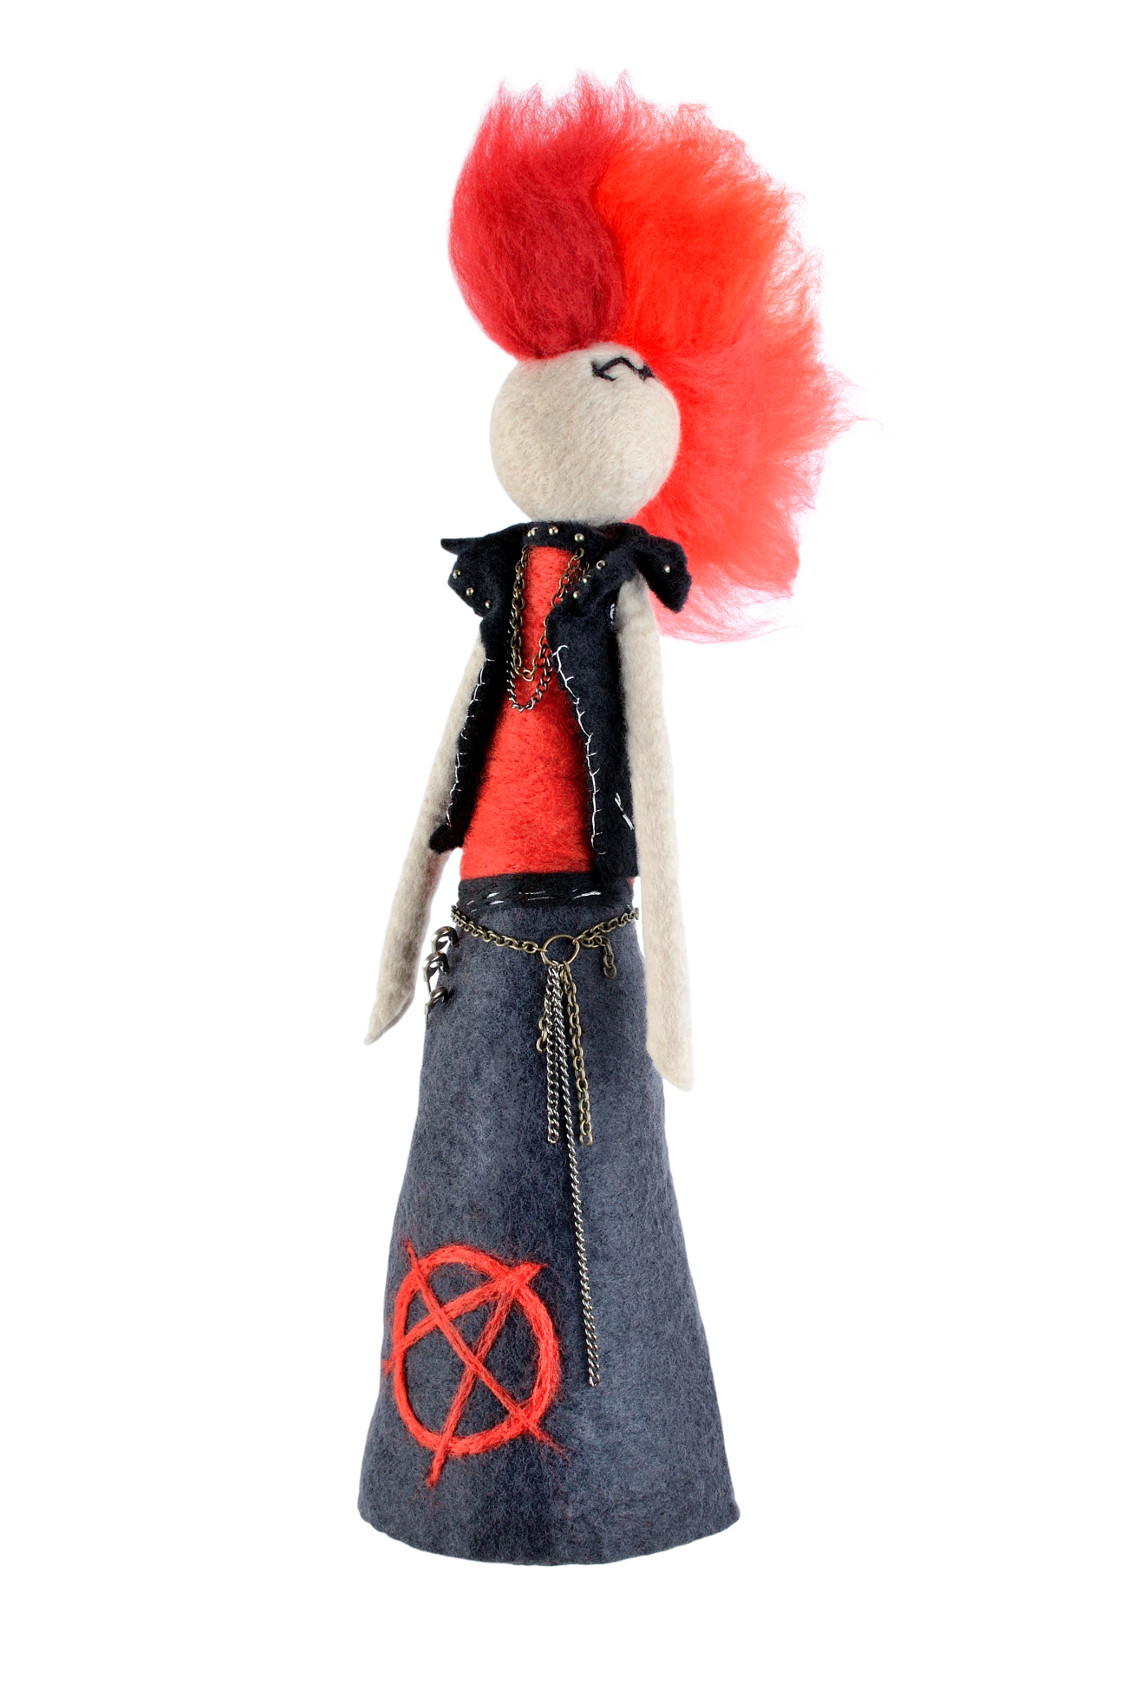 Punk Figurine With Mohawk Amp Anarchy Symbol Punk Rock Decor